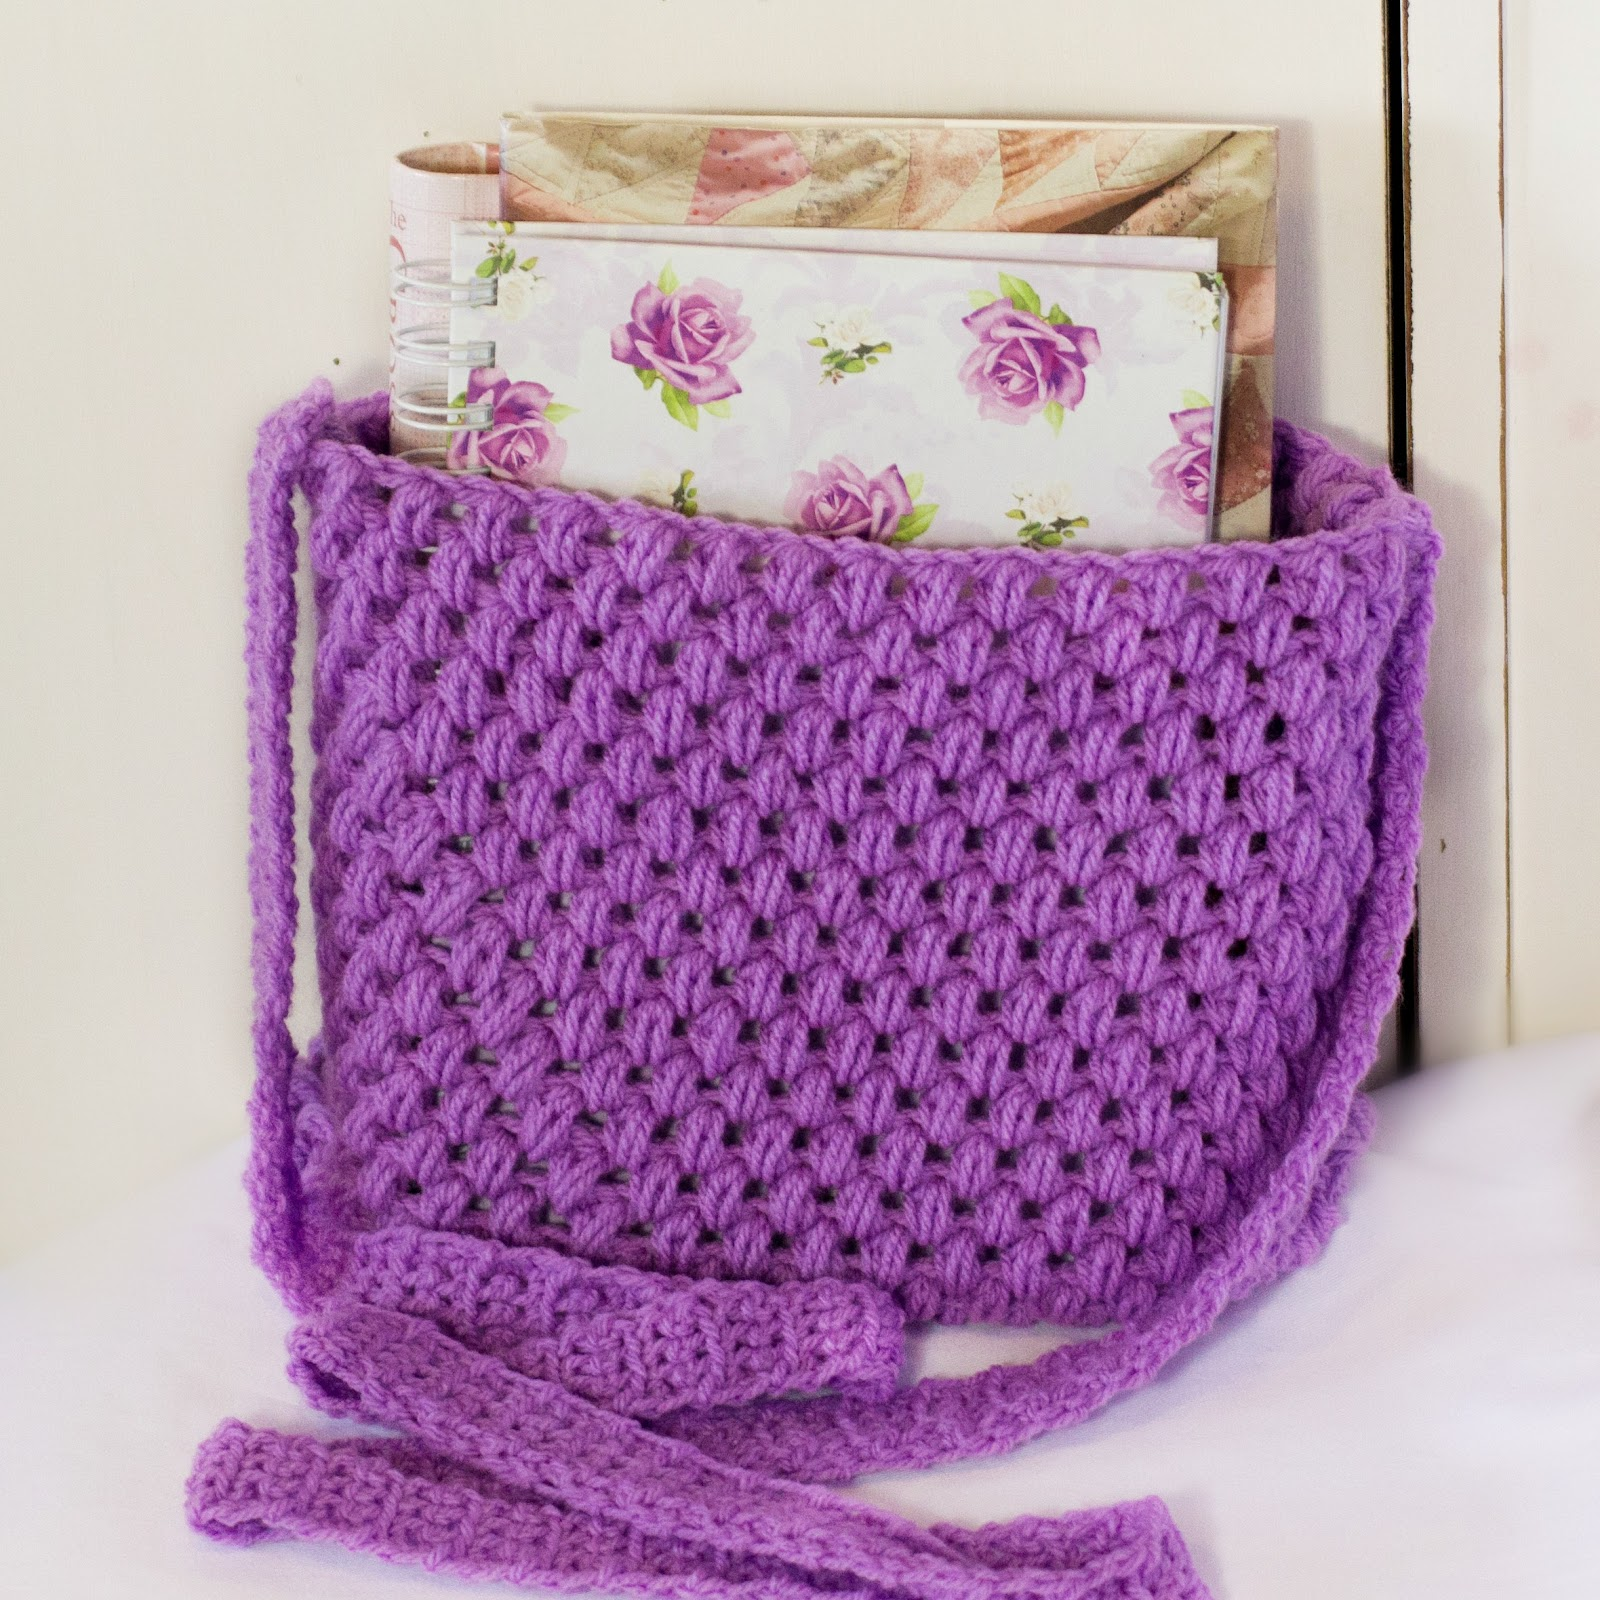 Crochet Bag Pattern For Beginners : ... Craft, Crochet, Create: Out and About ~ Easy Tote Bag Crochet Pattern